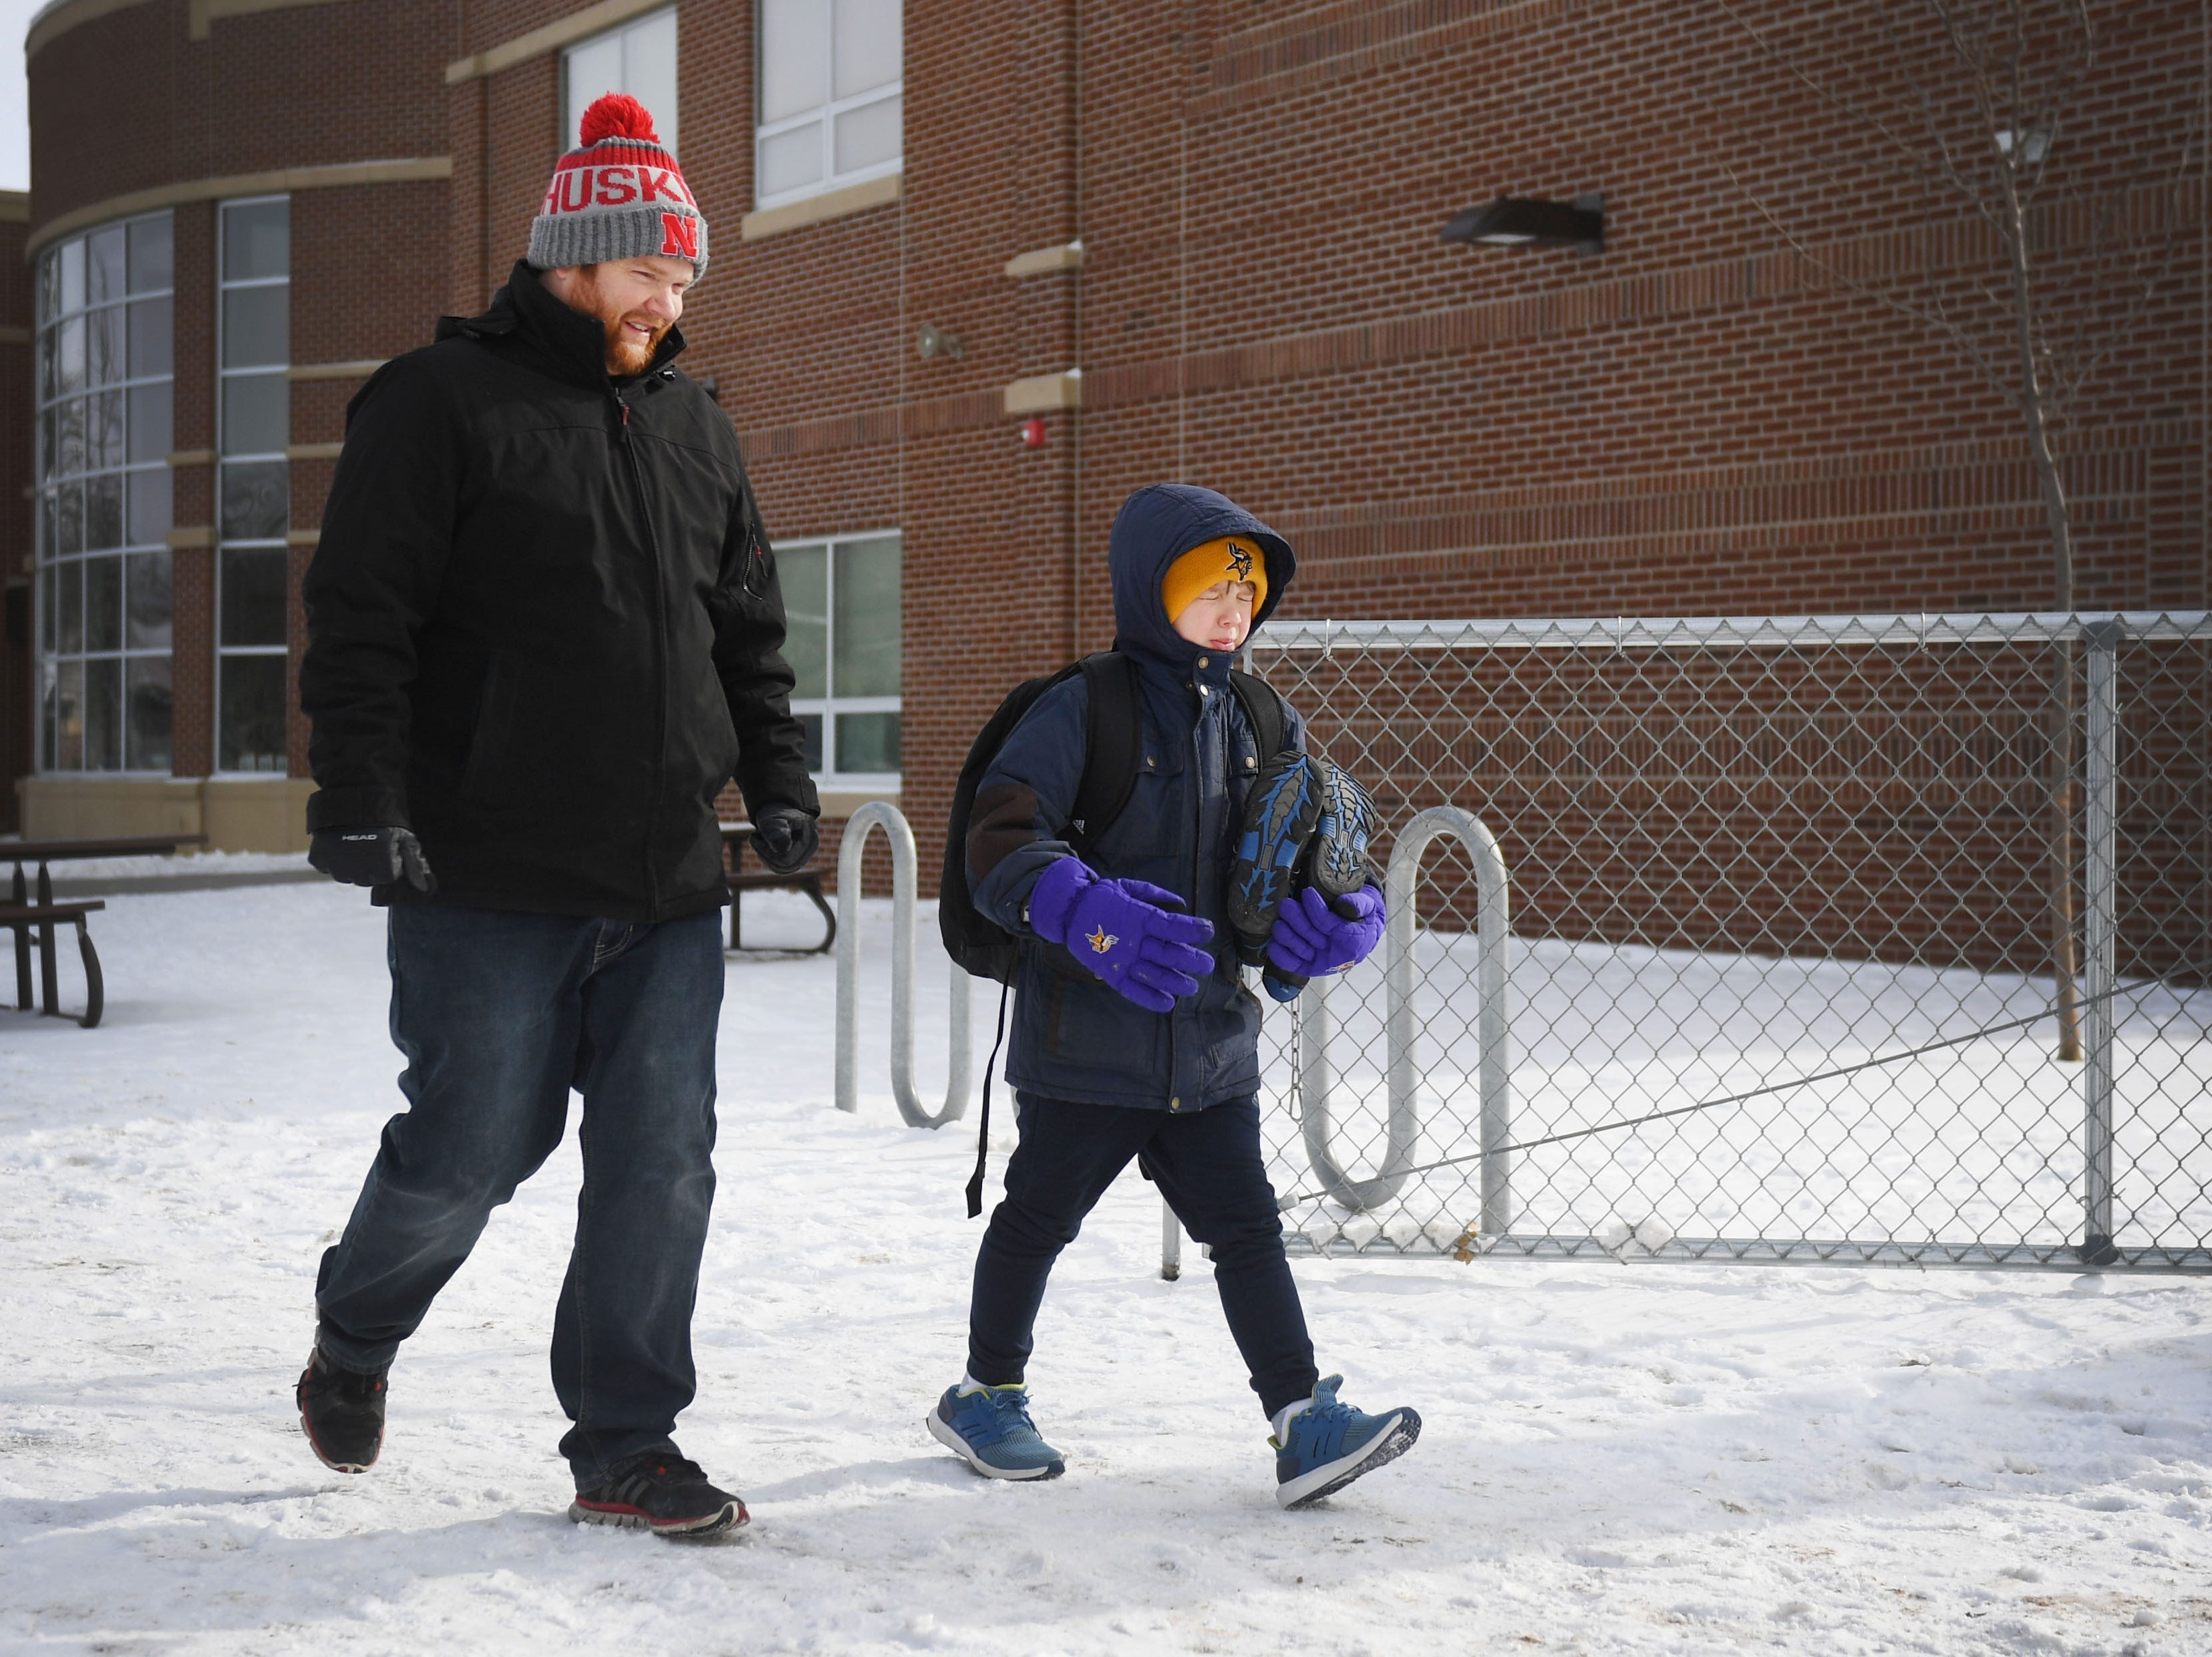 Joe Merriman picks up his nephew Ira Hanson at Susan B. Anthony Elementary School, Tuesday, Jan. 29, in Sioux Falls. Area schools had early dismissal Tuesday because of severe weather.